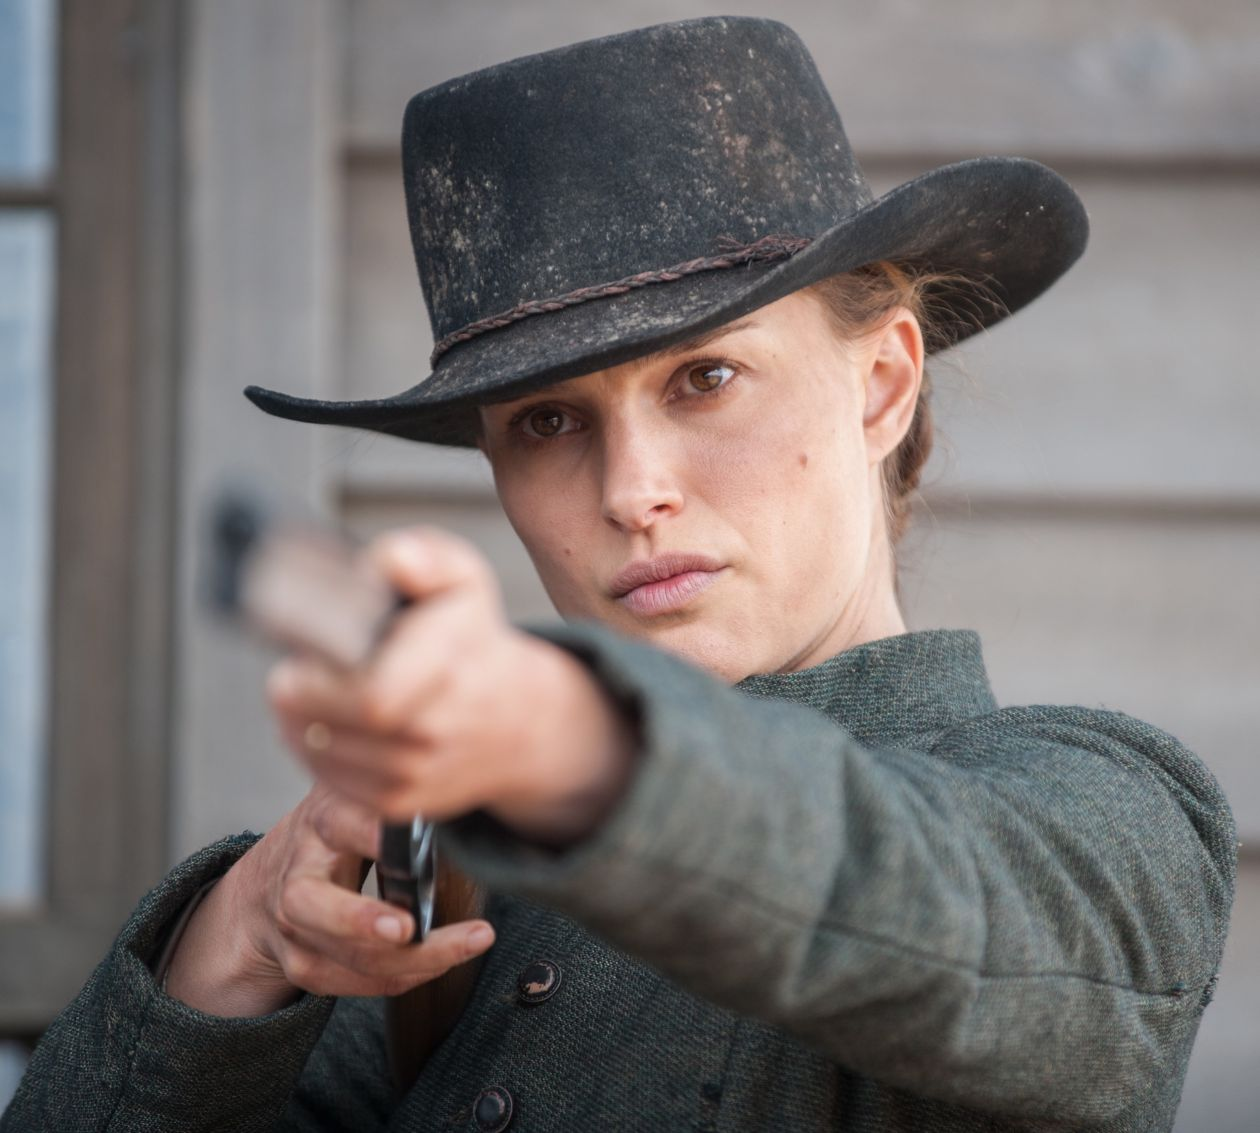 Natalie Portman actress | Jane got a gun | Gavin O'Connor 2015 Movie / Photo film